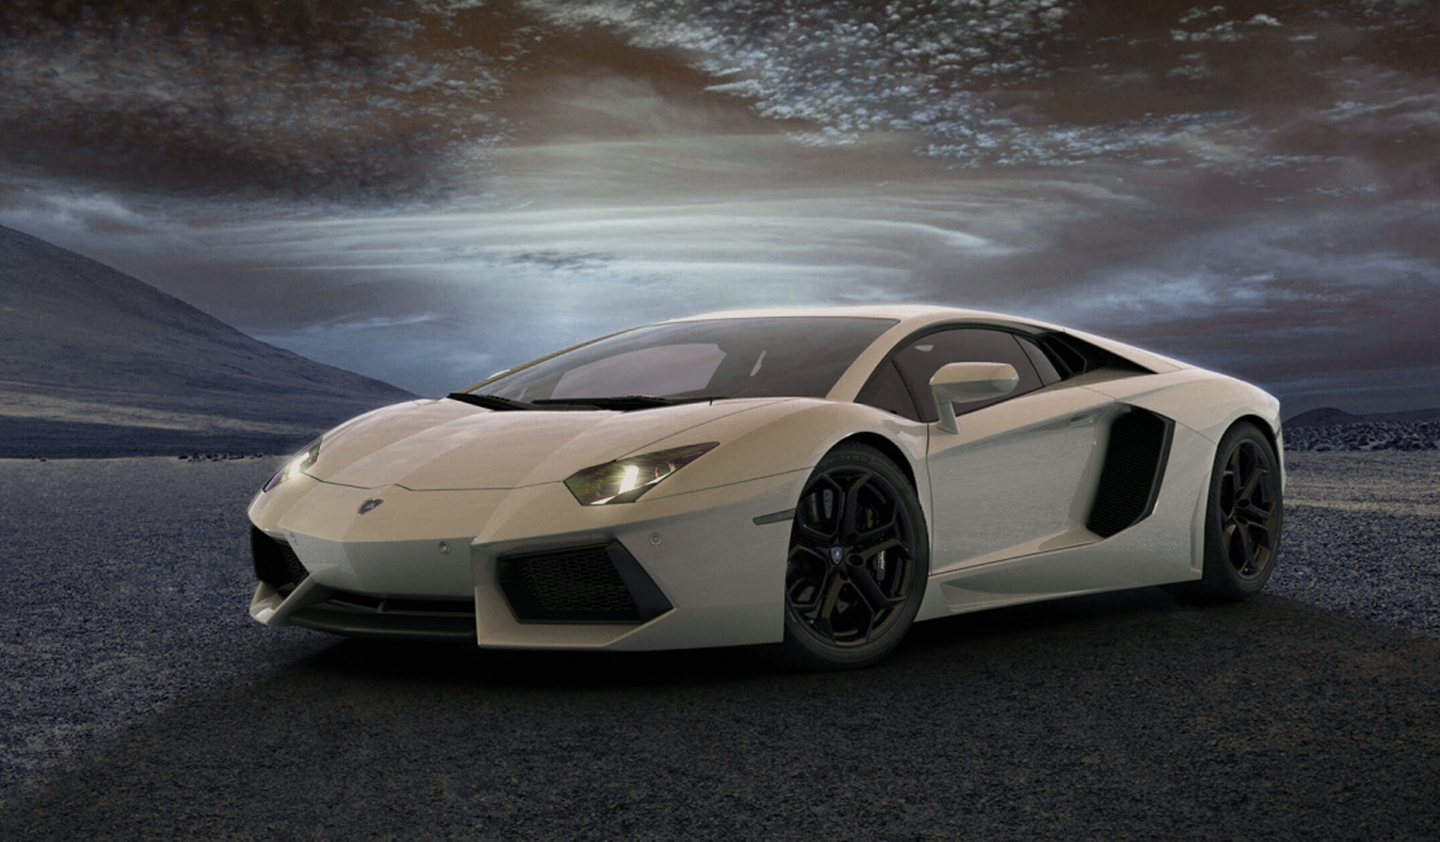 lamborghini aventador wallpaper HD Wallpaper The Wallpaper Database 1440x842